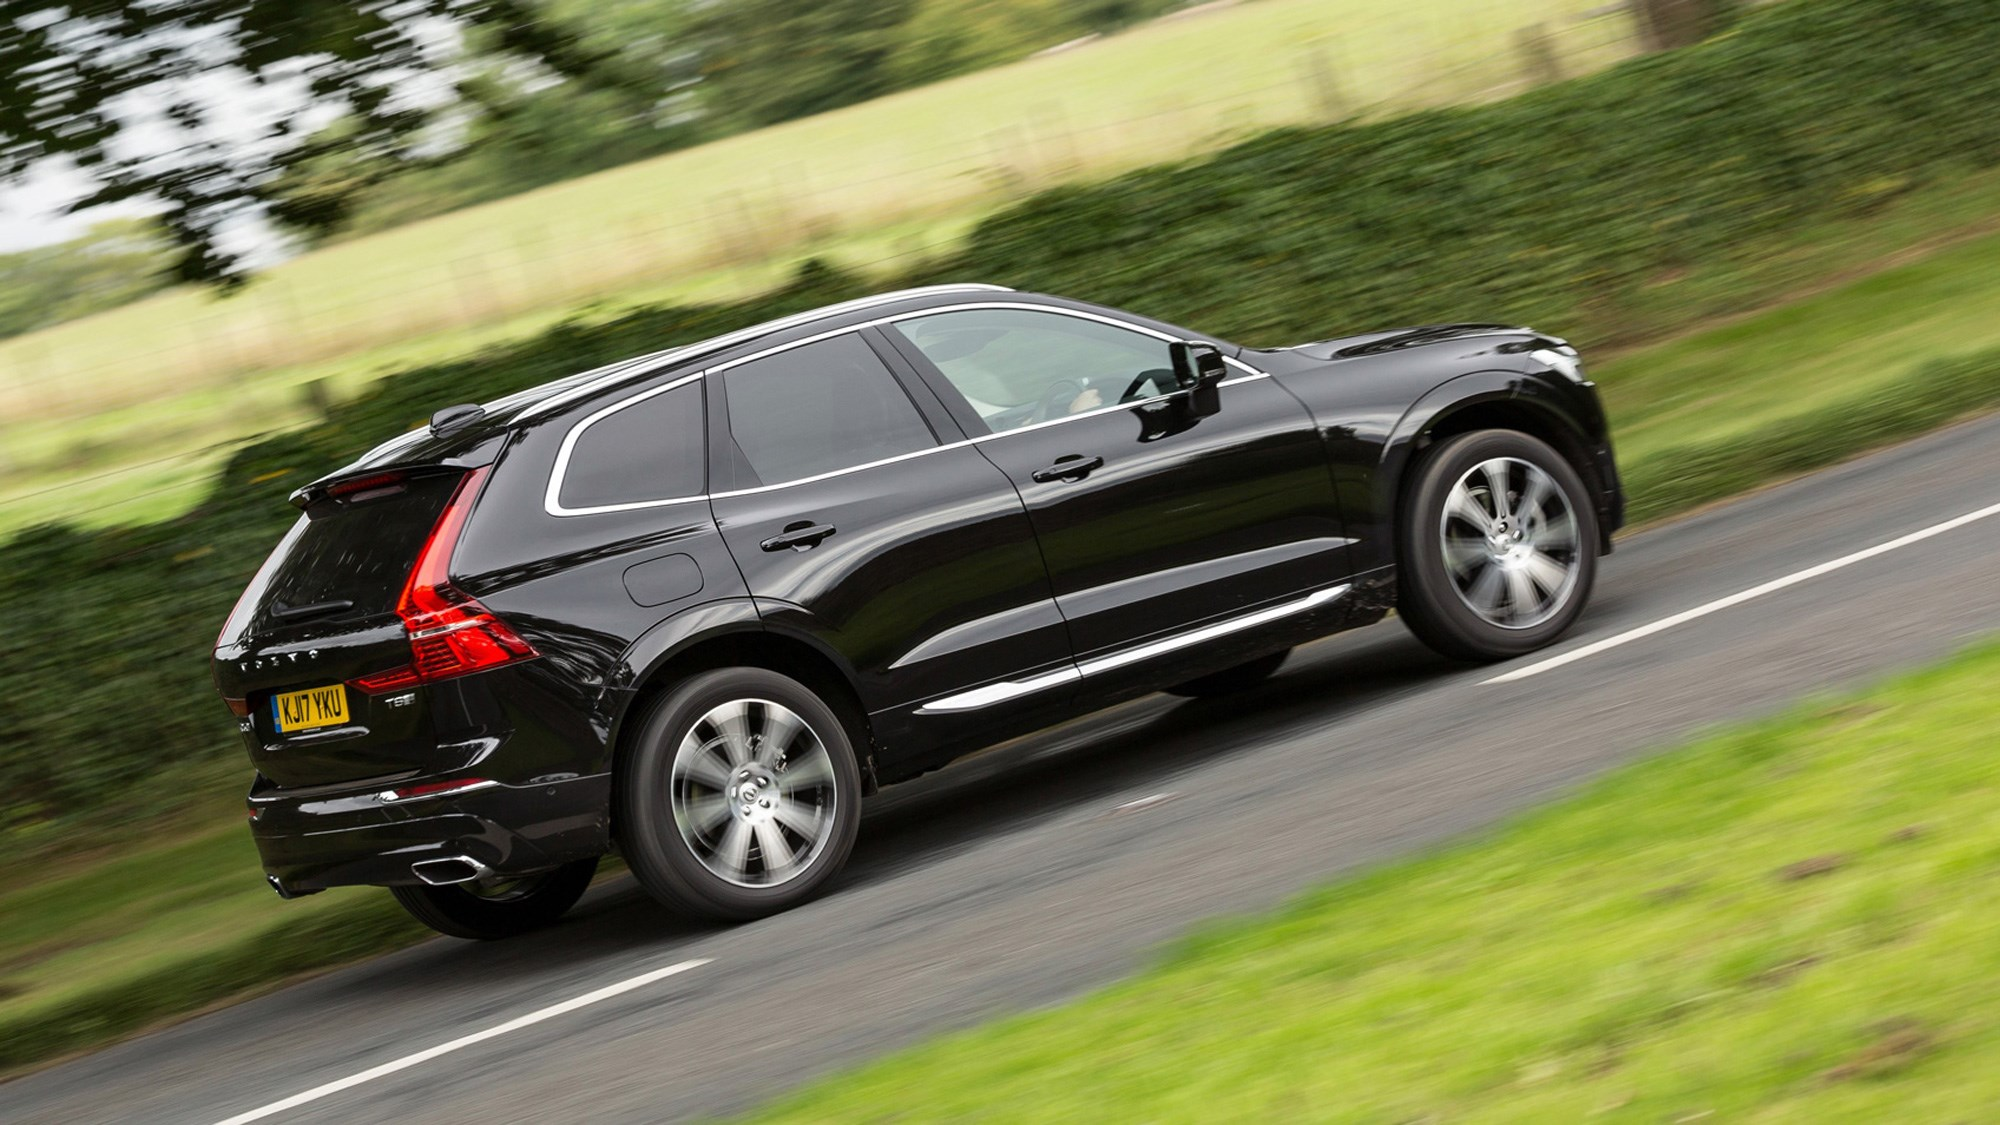 Volvo XC60 hybrid review - T8 Twin Engine plug-in driven, side view, black, driving, 2020